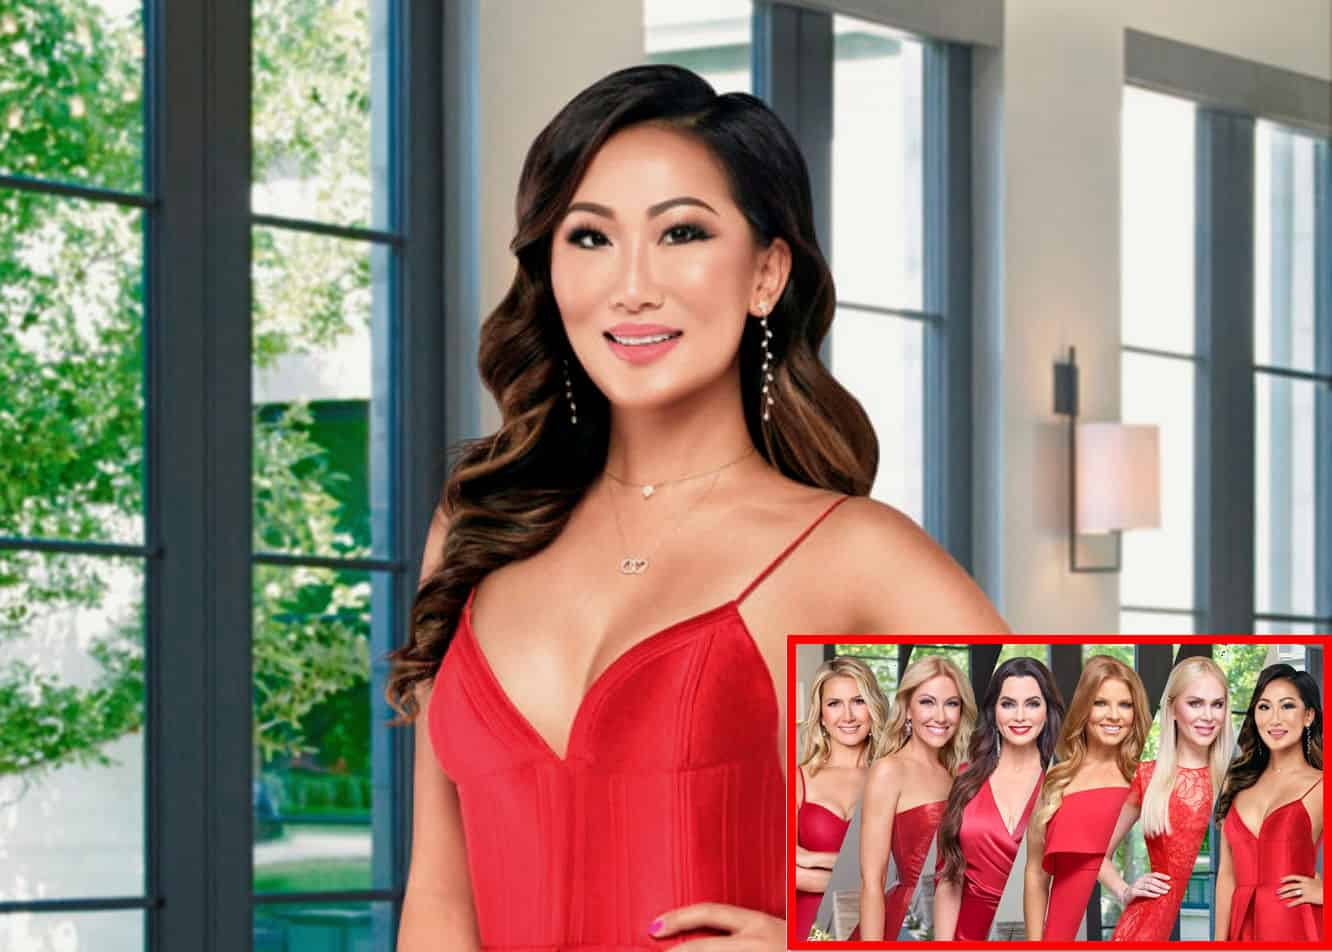 """Dr. Tiffany Moon Denies """"Talking Down"""" To RHOD Co-Stars, Says It's Her Job To """"Correct And Teach,"""" Plus She Defends Party Time Limit"""